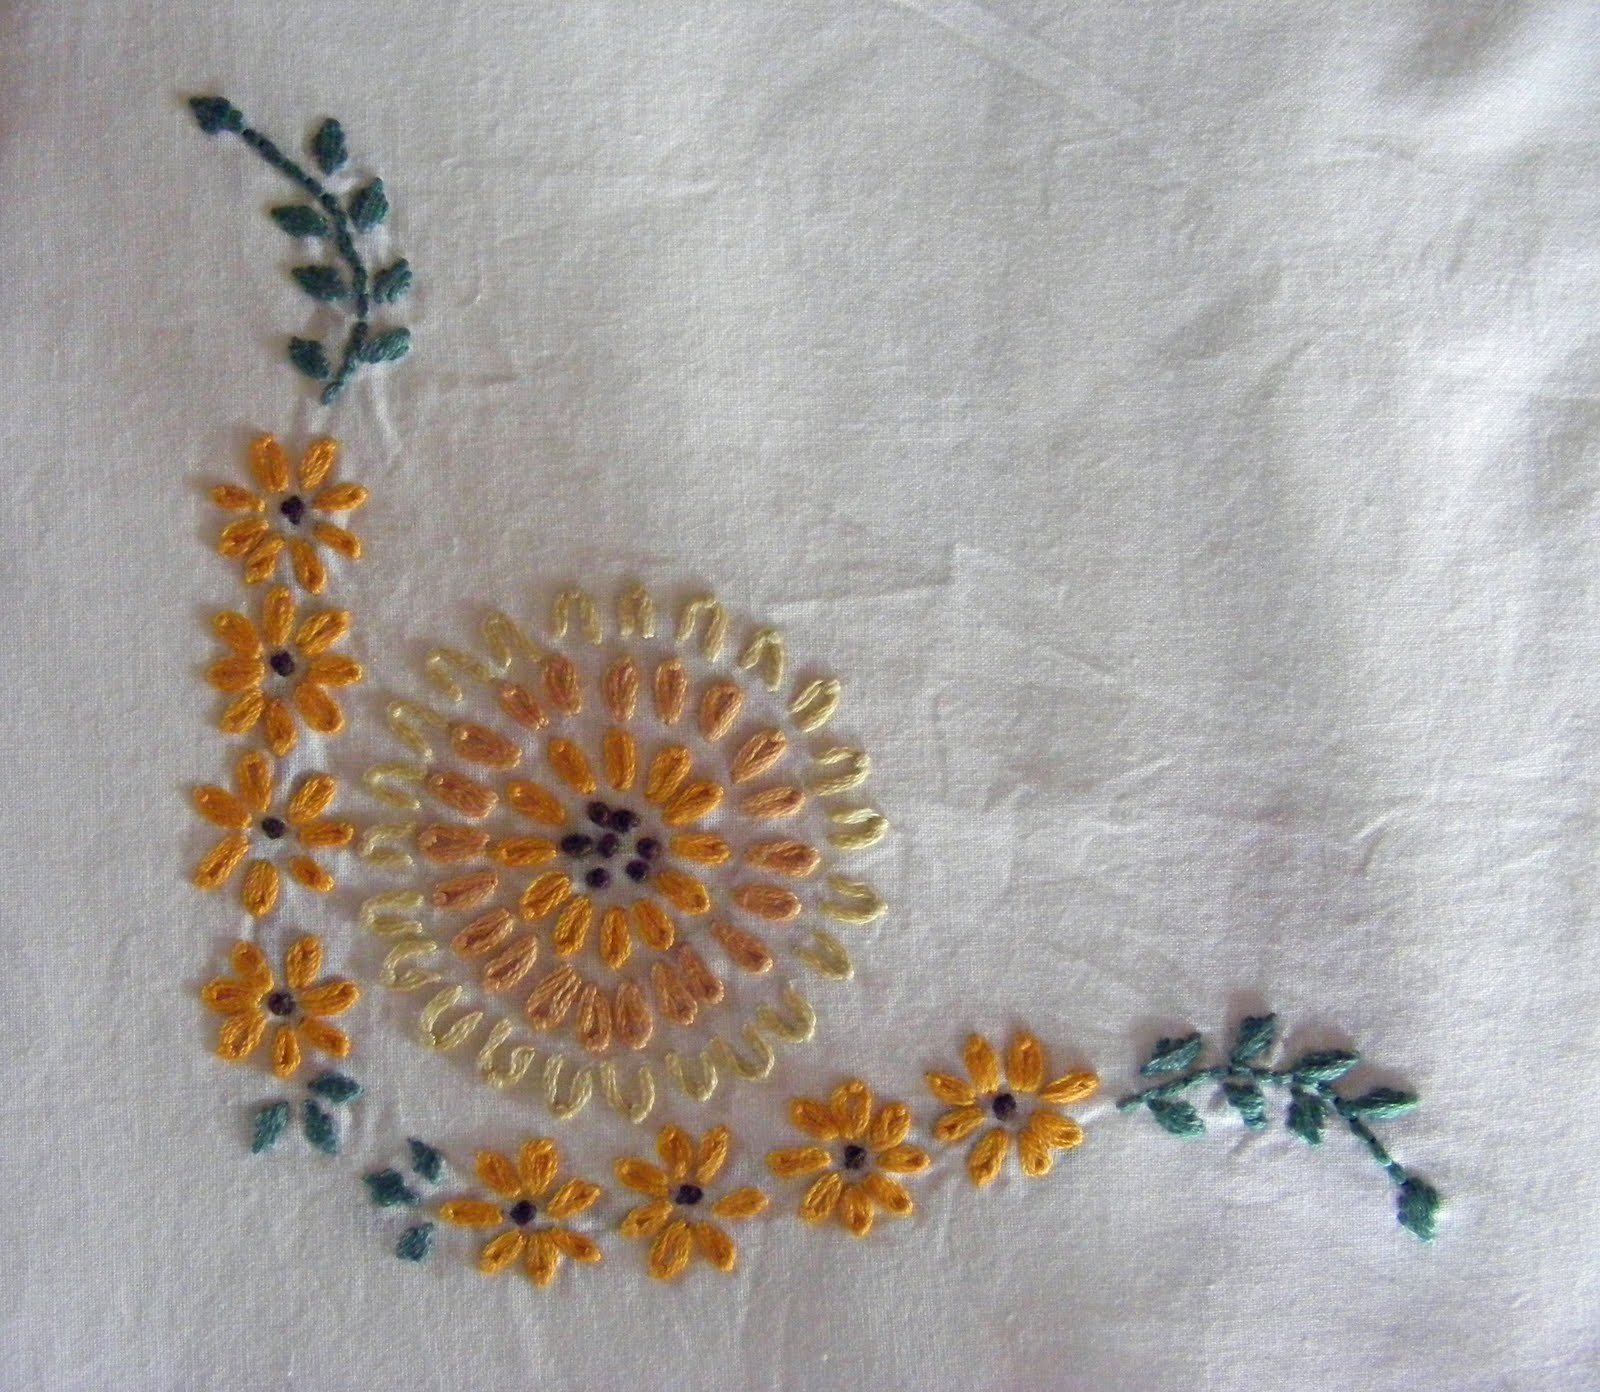 Hand Embroidery Designs Pillow Case: Pillow Case Hand Embroidery Designs   makaroka com,